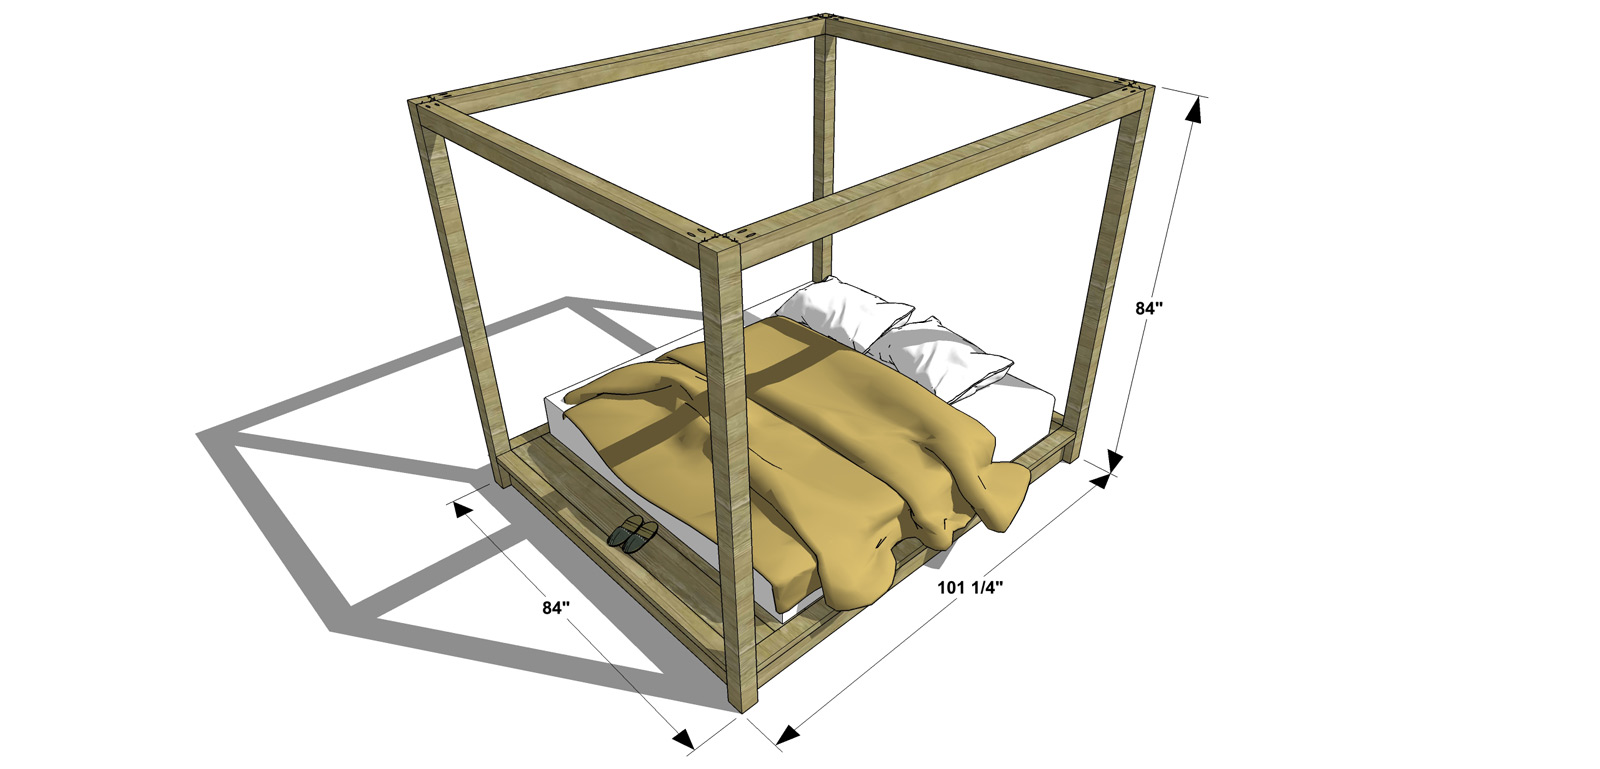 Fresh You Can Build This Free DIY Furniture Plans How to Build a King